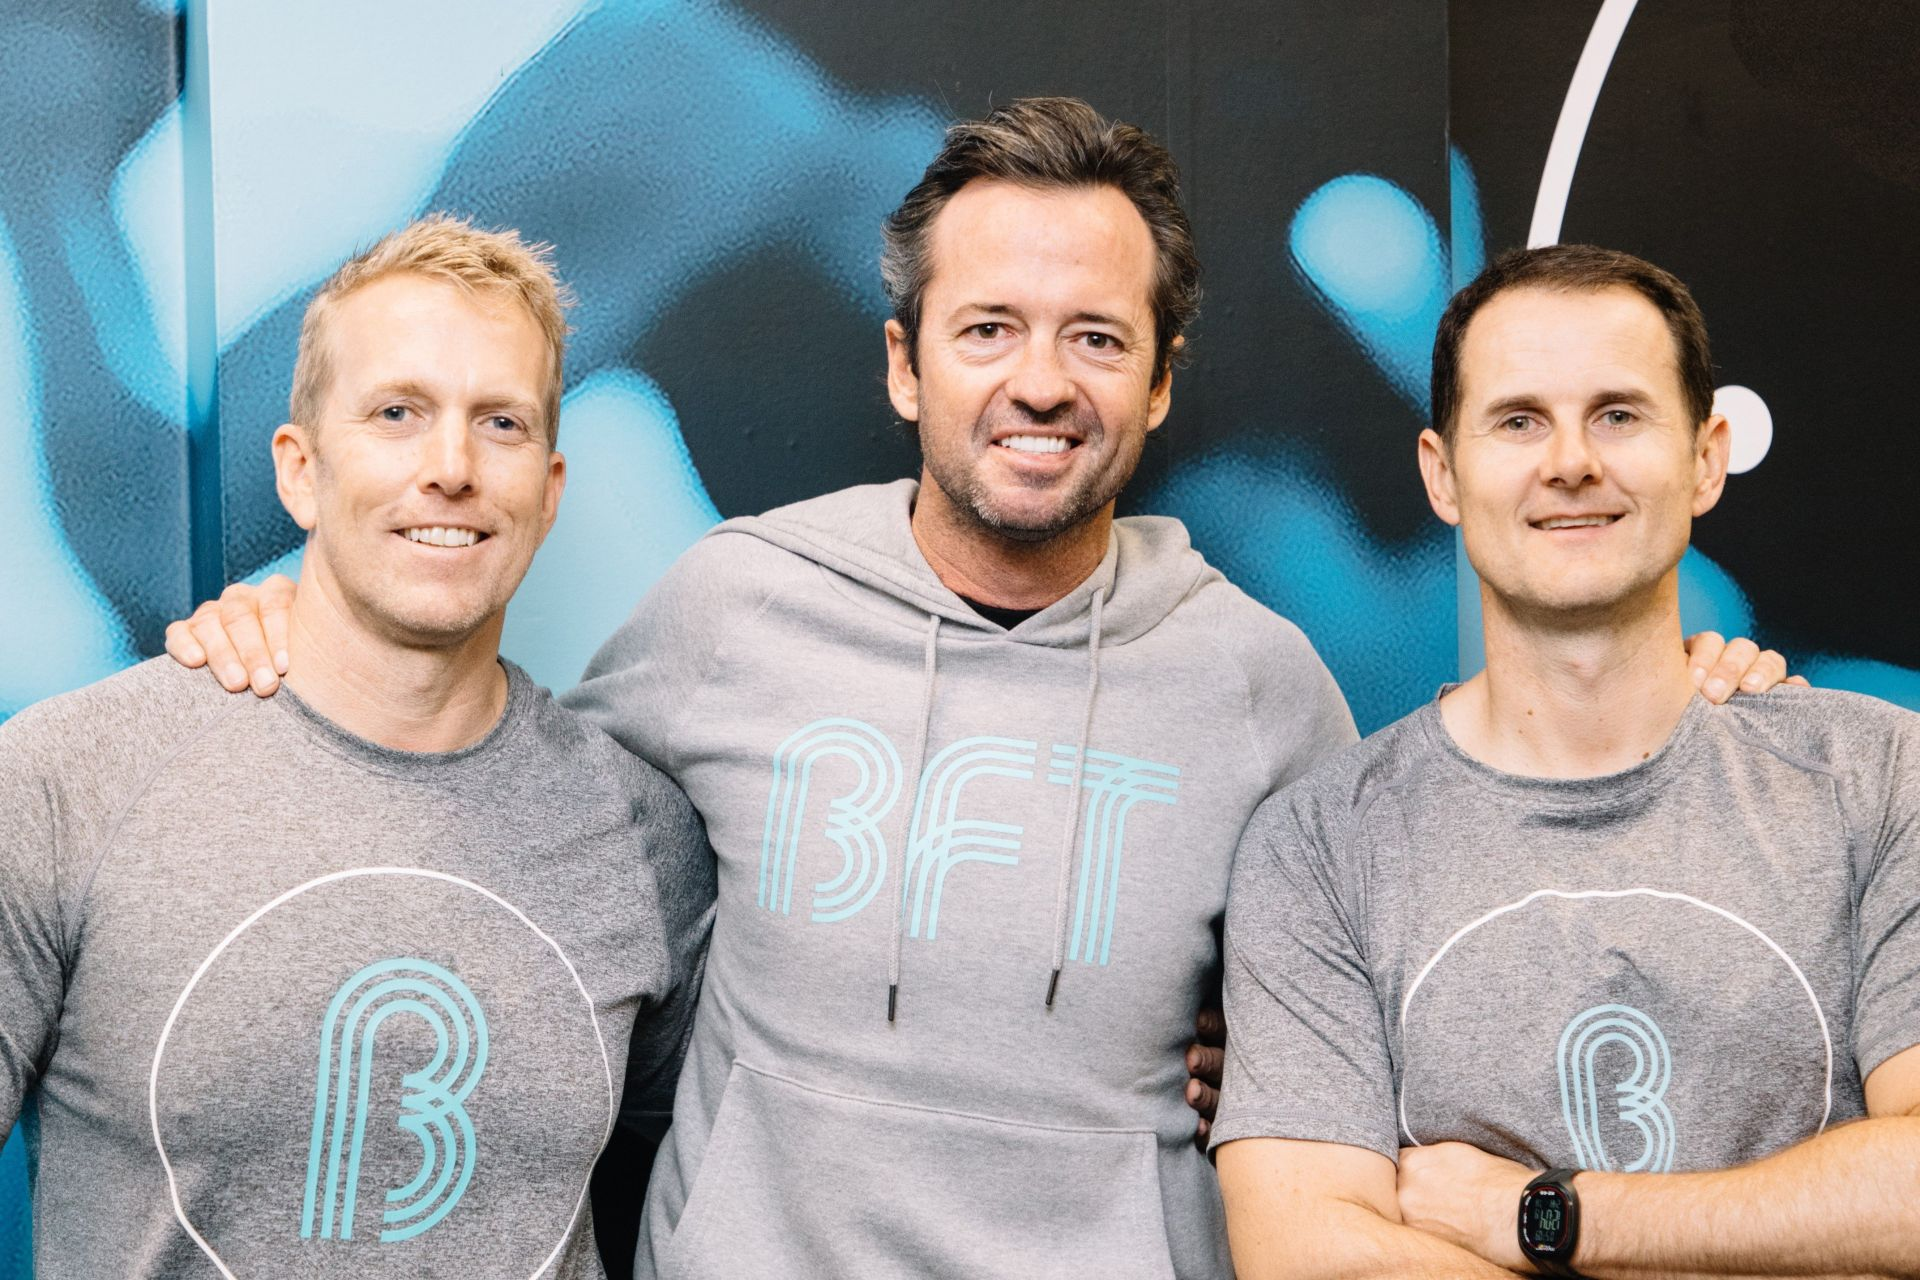 Body Fit Training signs $60m deal   Inside Franchise Business Executive